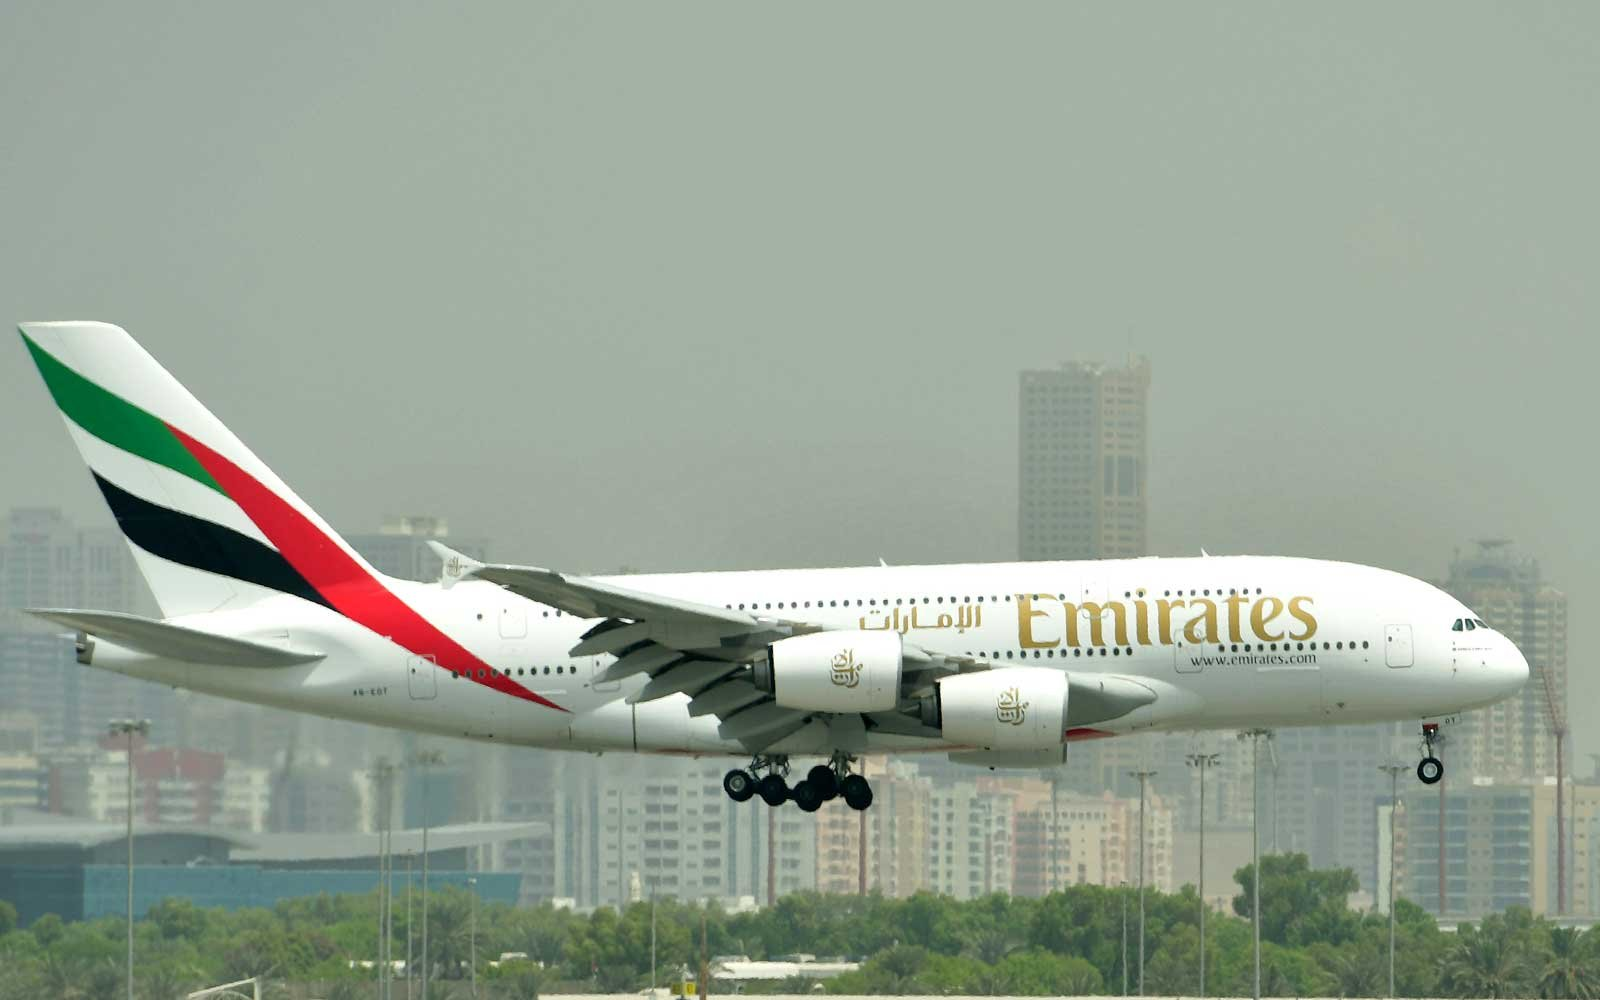 Emirates order helps to keep Airbus A380 superjumbo flying